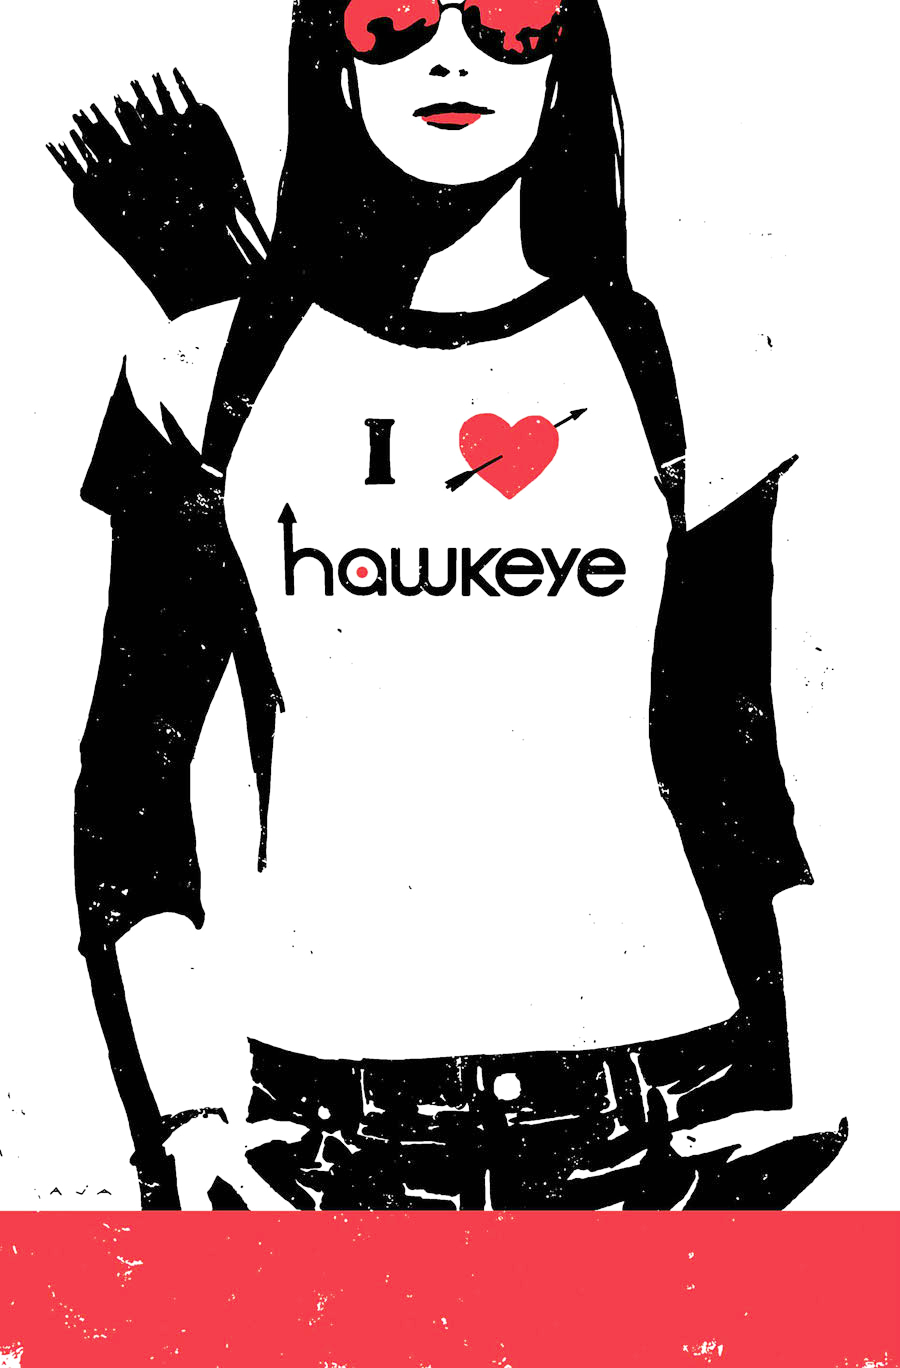 viperf0x:   Hawkeye #1-8  A moment of silence to appreciate David Aja's beautiful covers.